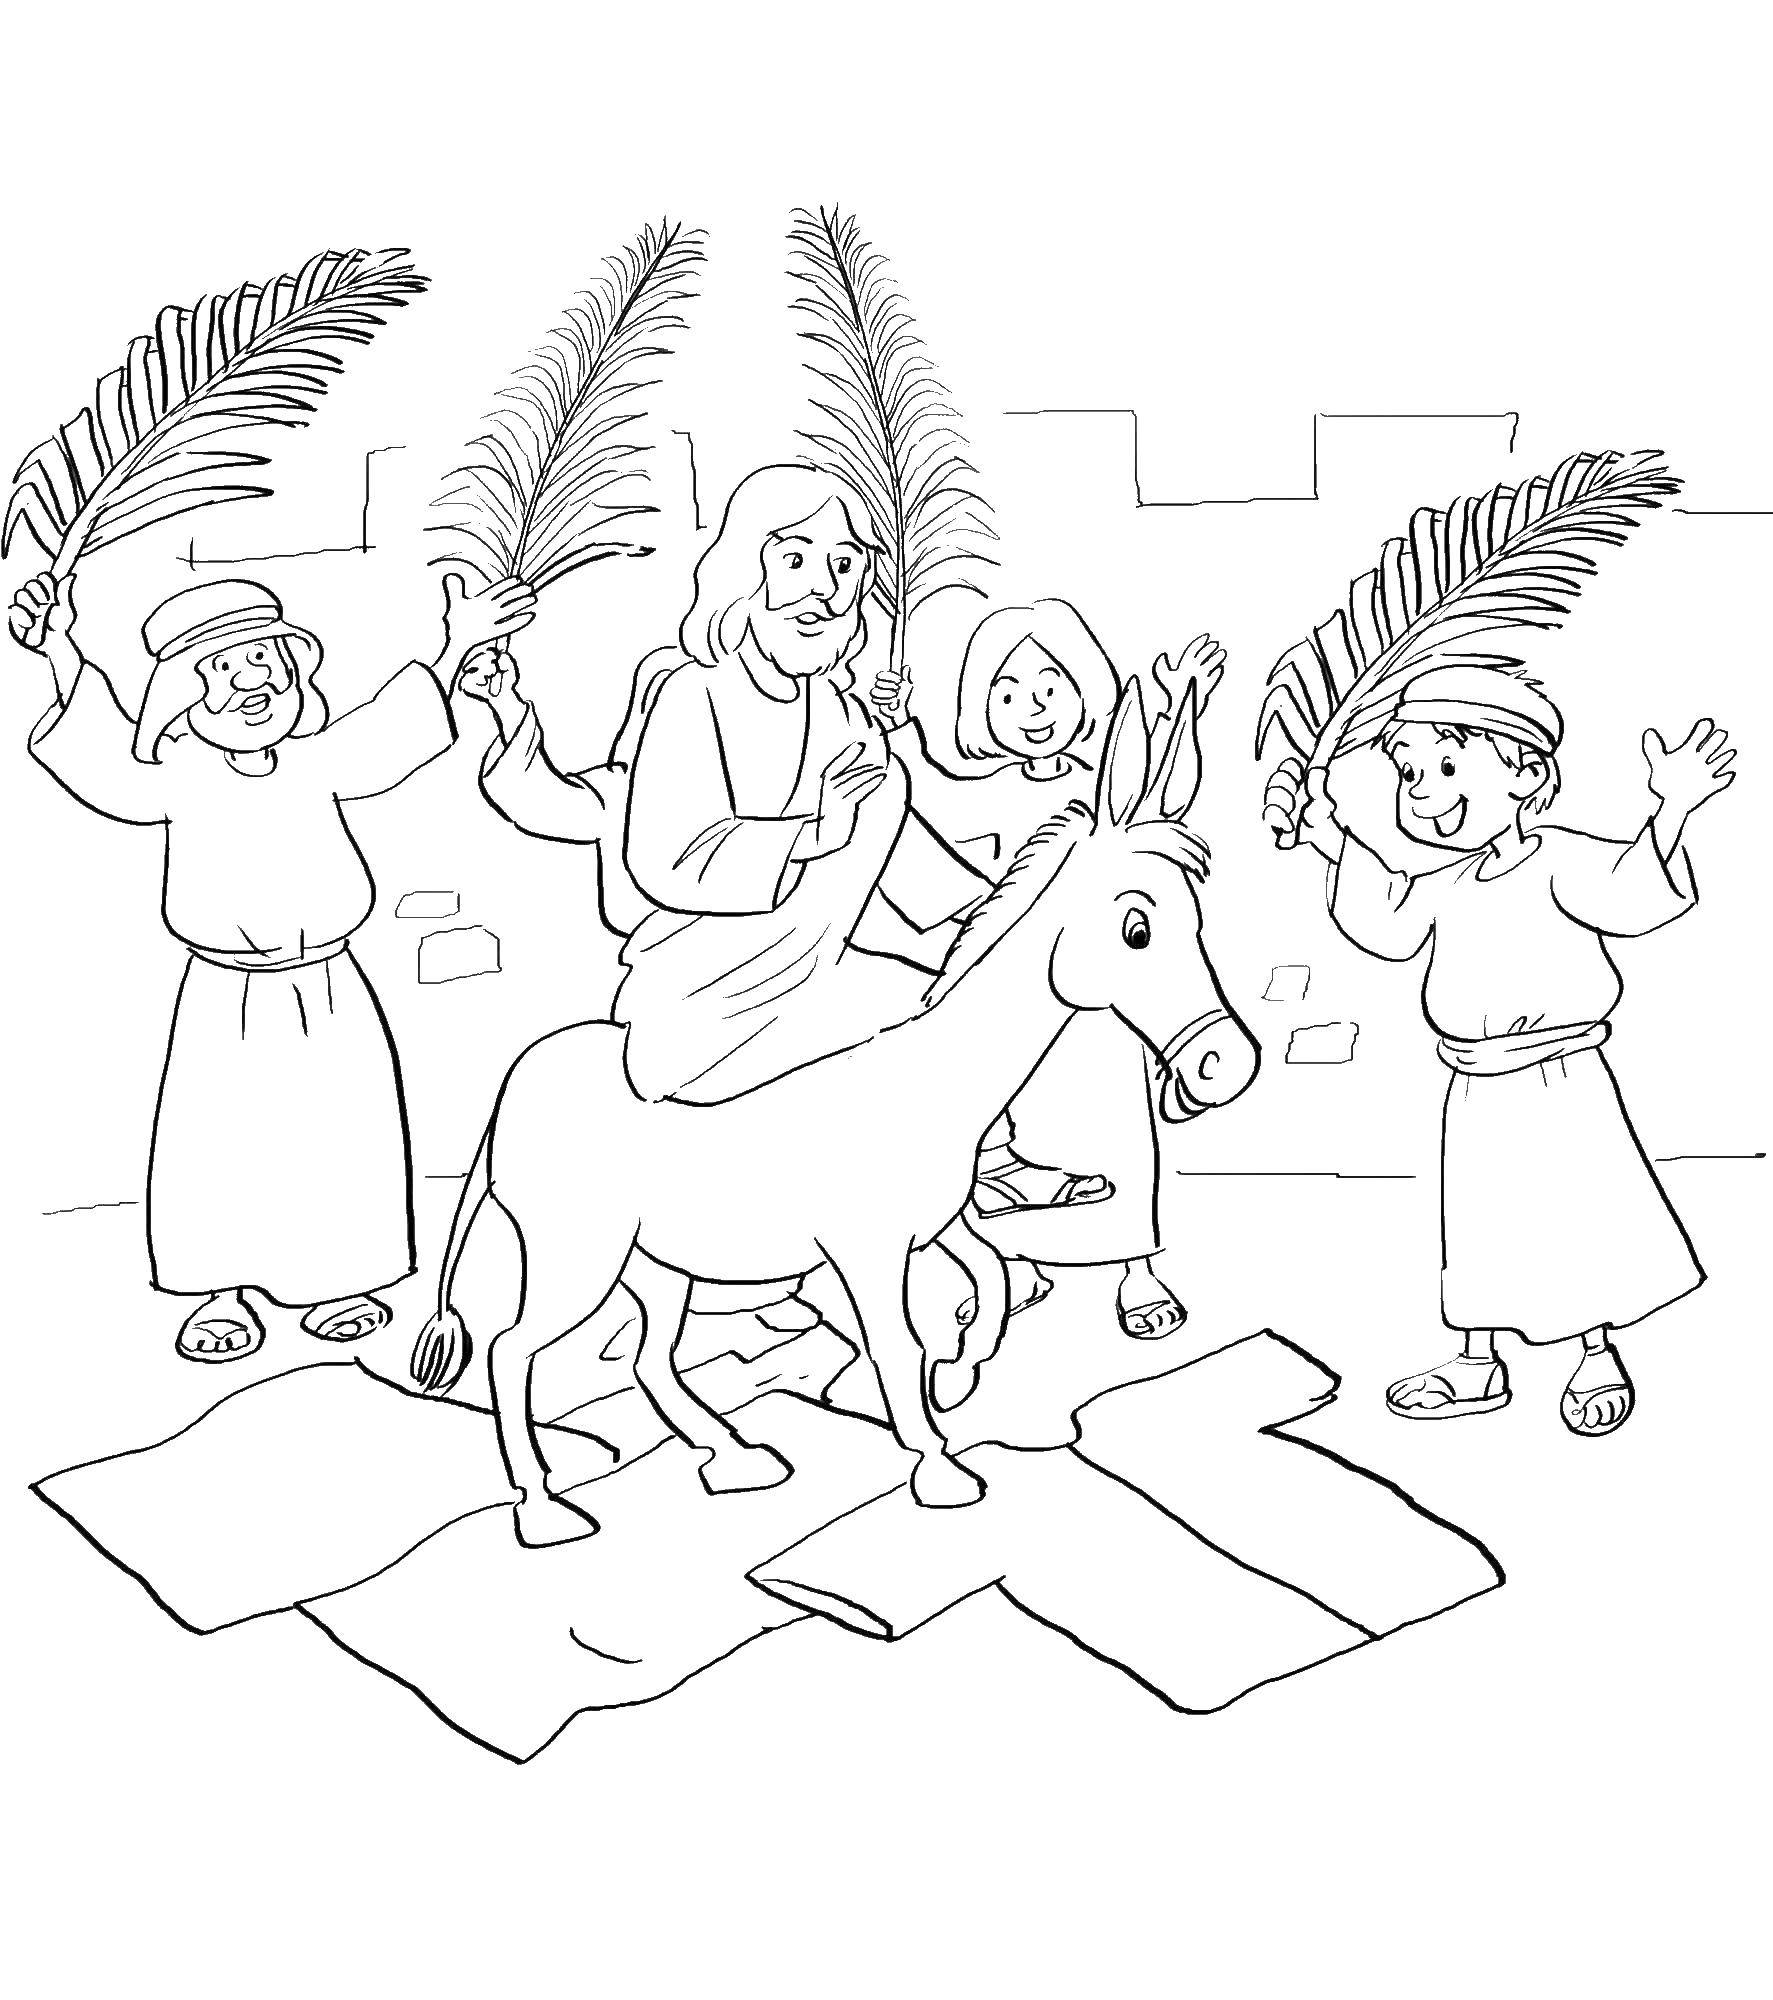 Coloring Jesus on a donkey Download Jesus, donkey.  Print ,the Bible,